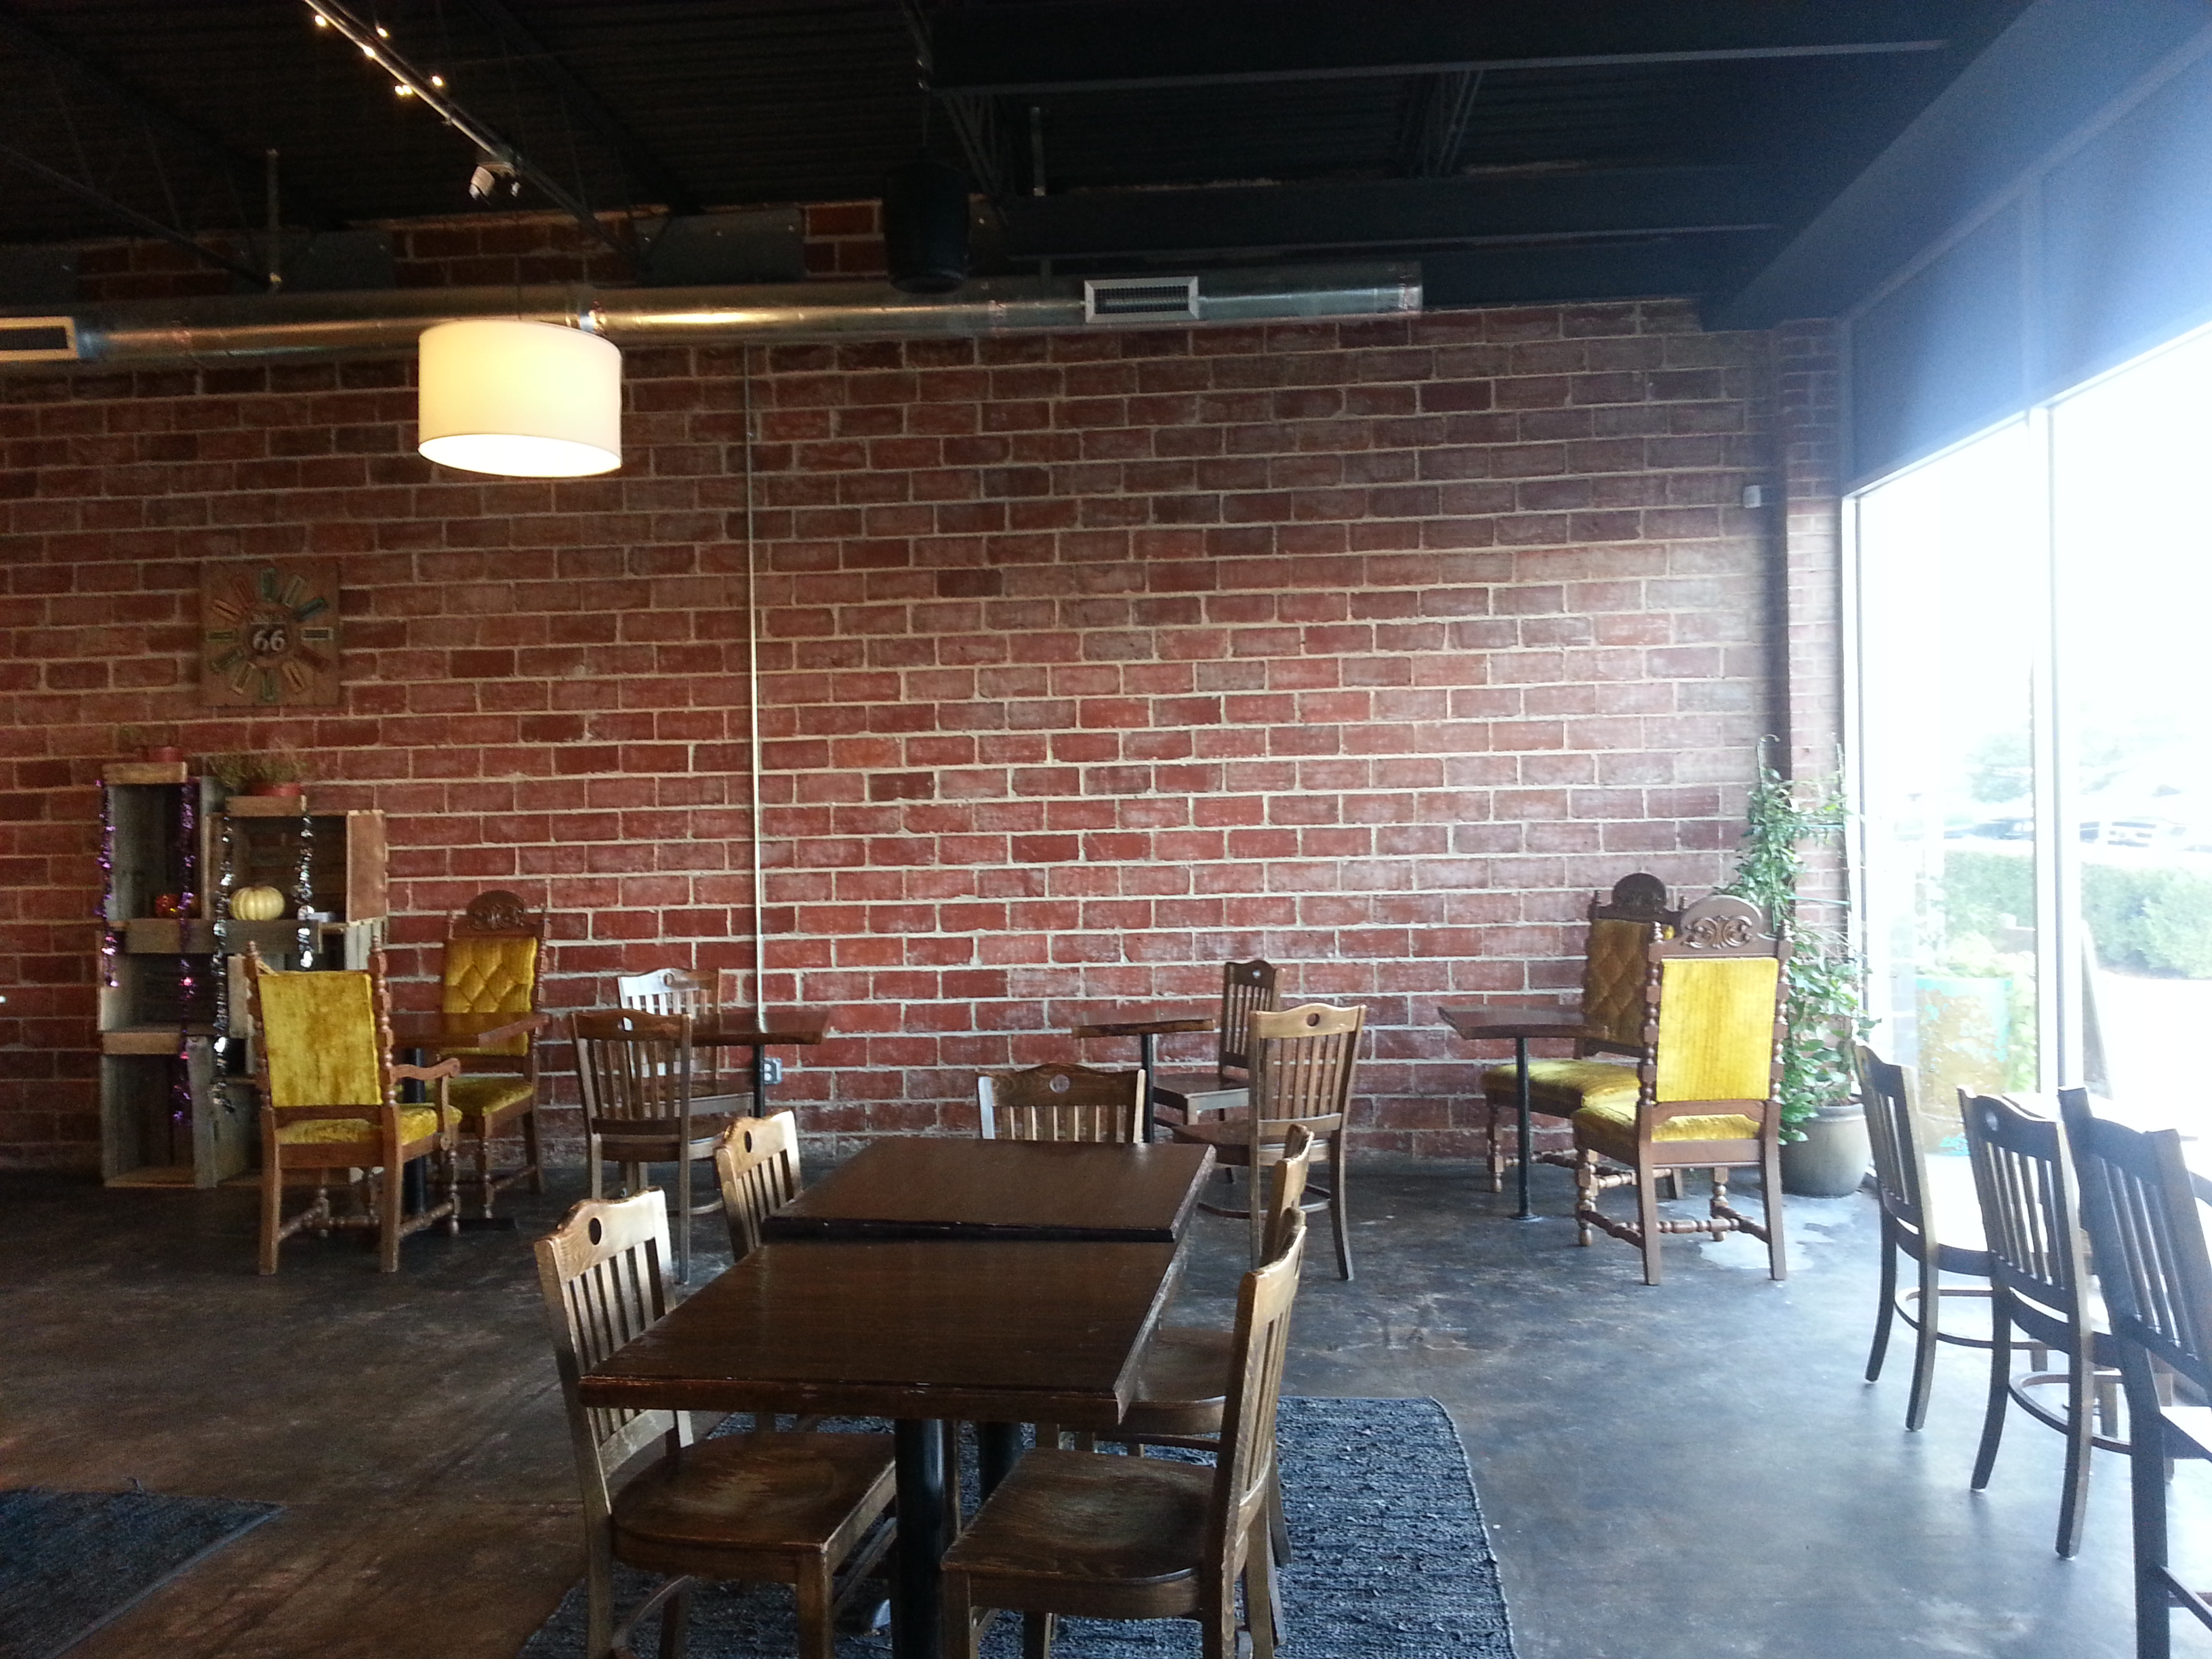 Belle Kitchen Party Room Venue For Rent In Oklahoma City